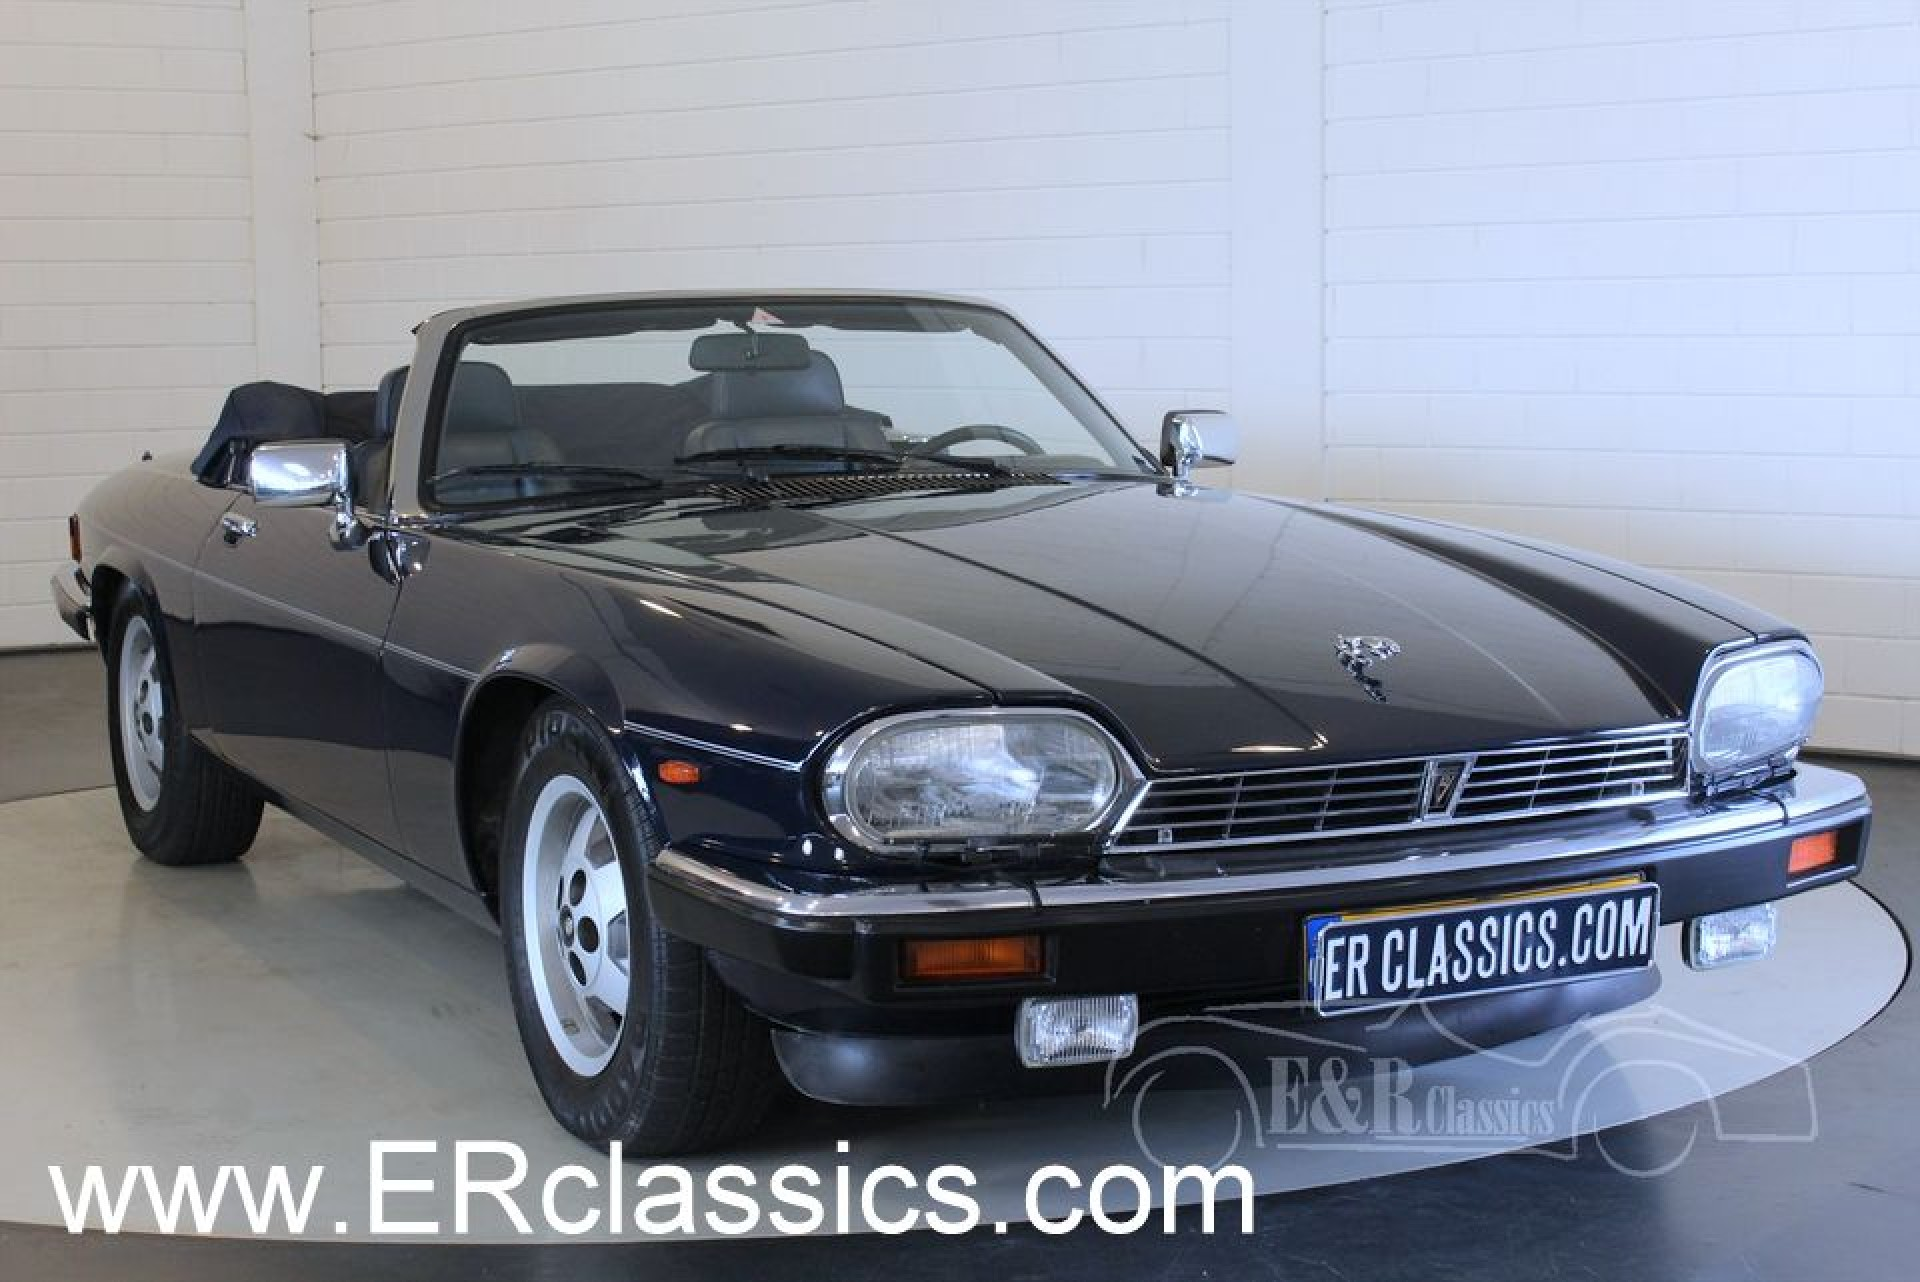 jaguar xjs cabriolet 1989 for sale at erclassics. Black Bedroom Furniture Sets. Home Design Ideas